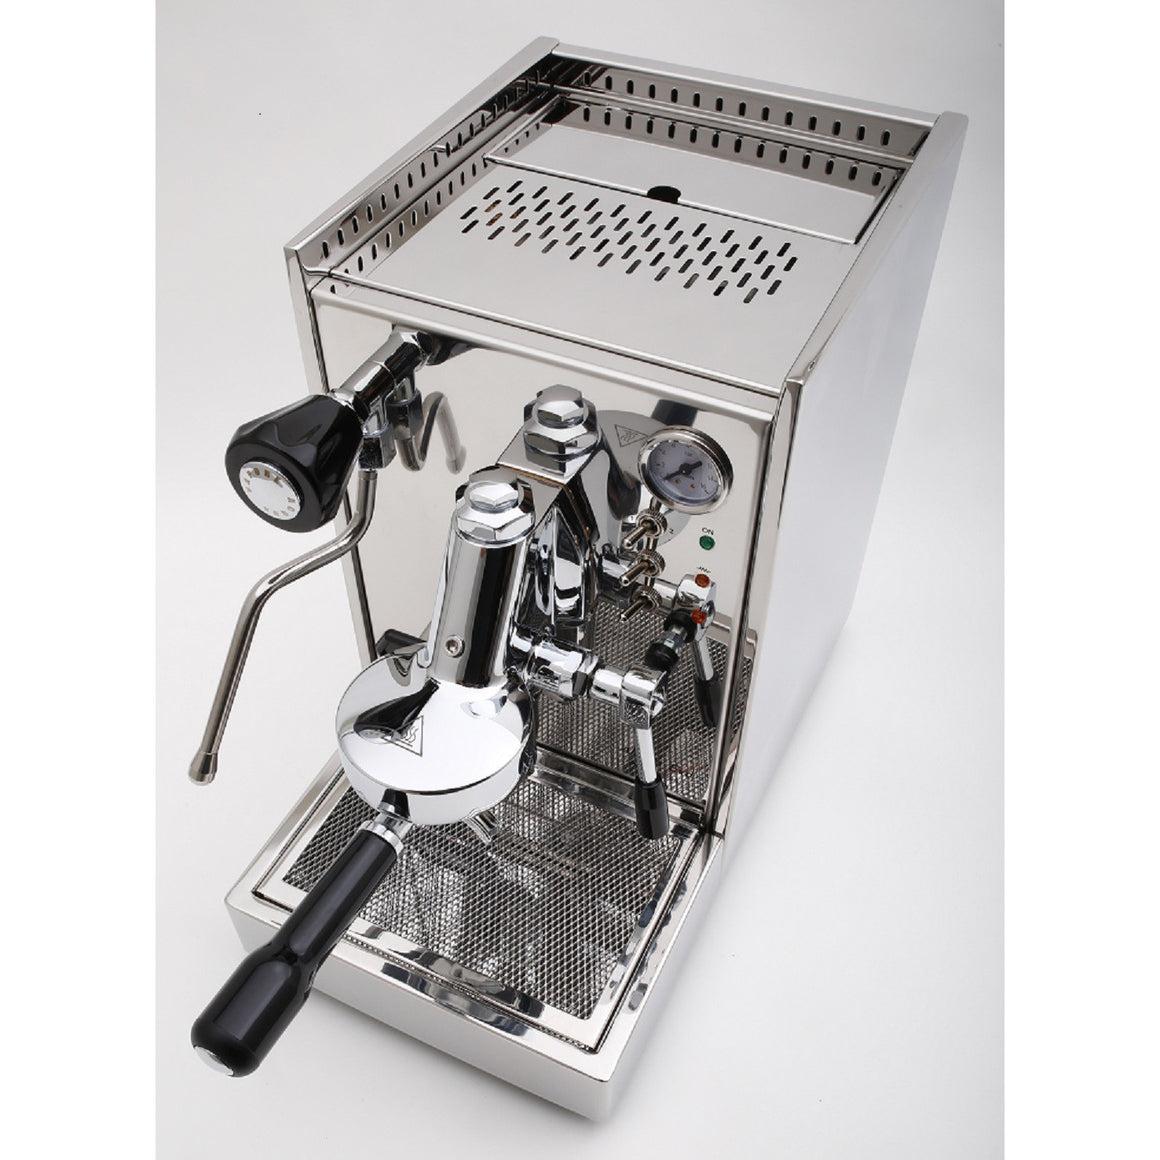 QUICK MILL ALEXIA EVO ESPRESSO MACHINE - My Espresso Shop - 7